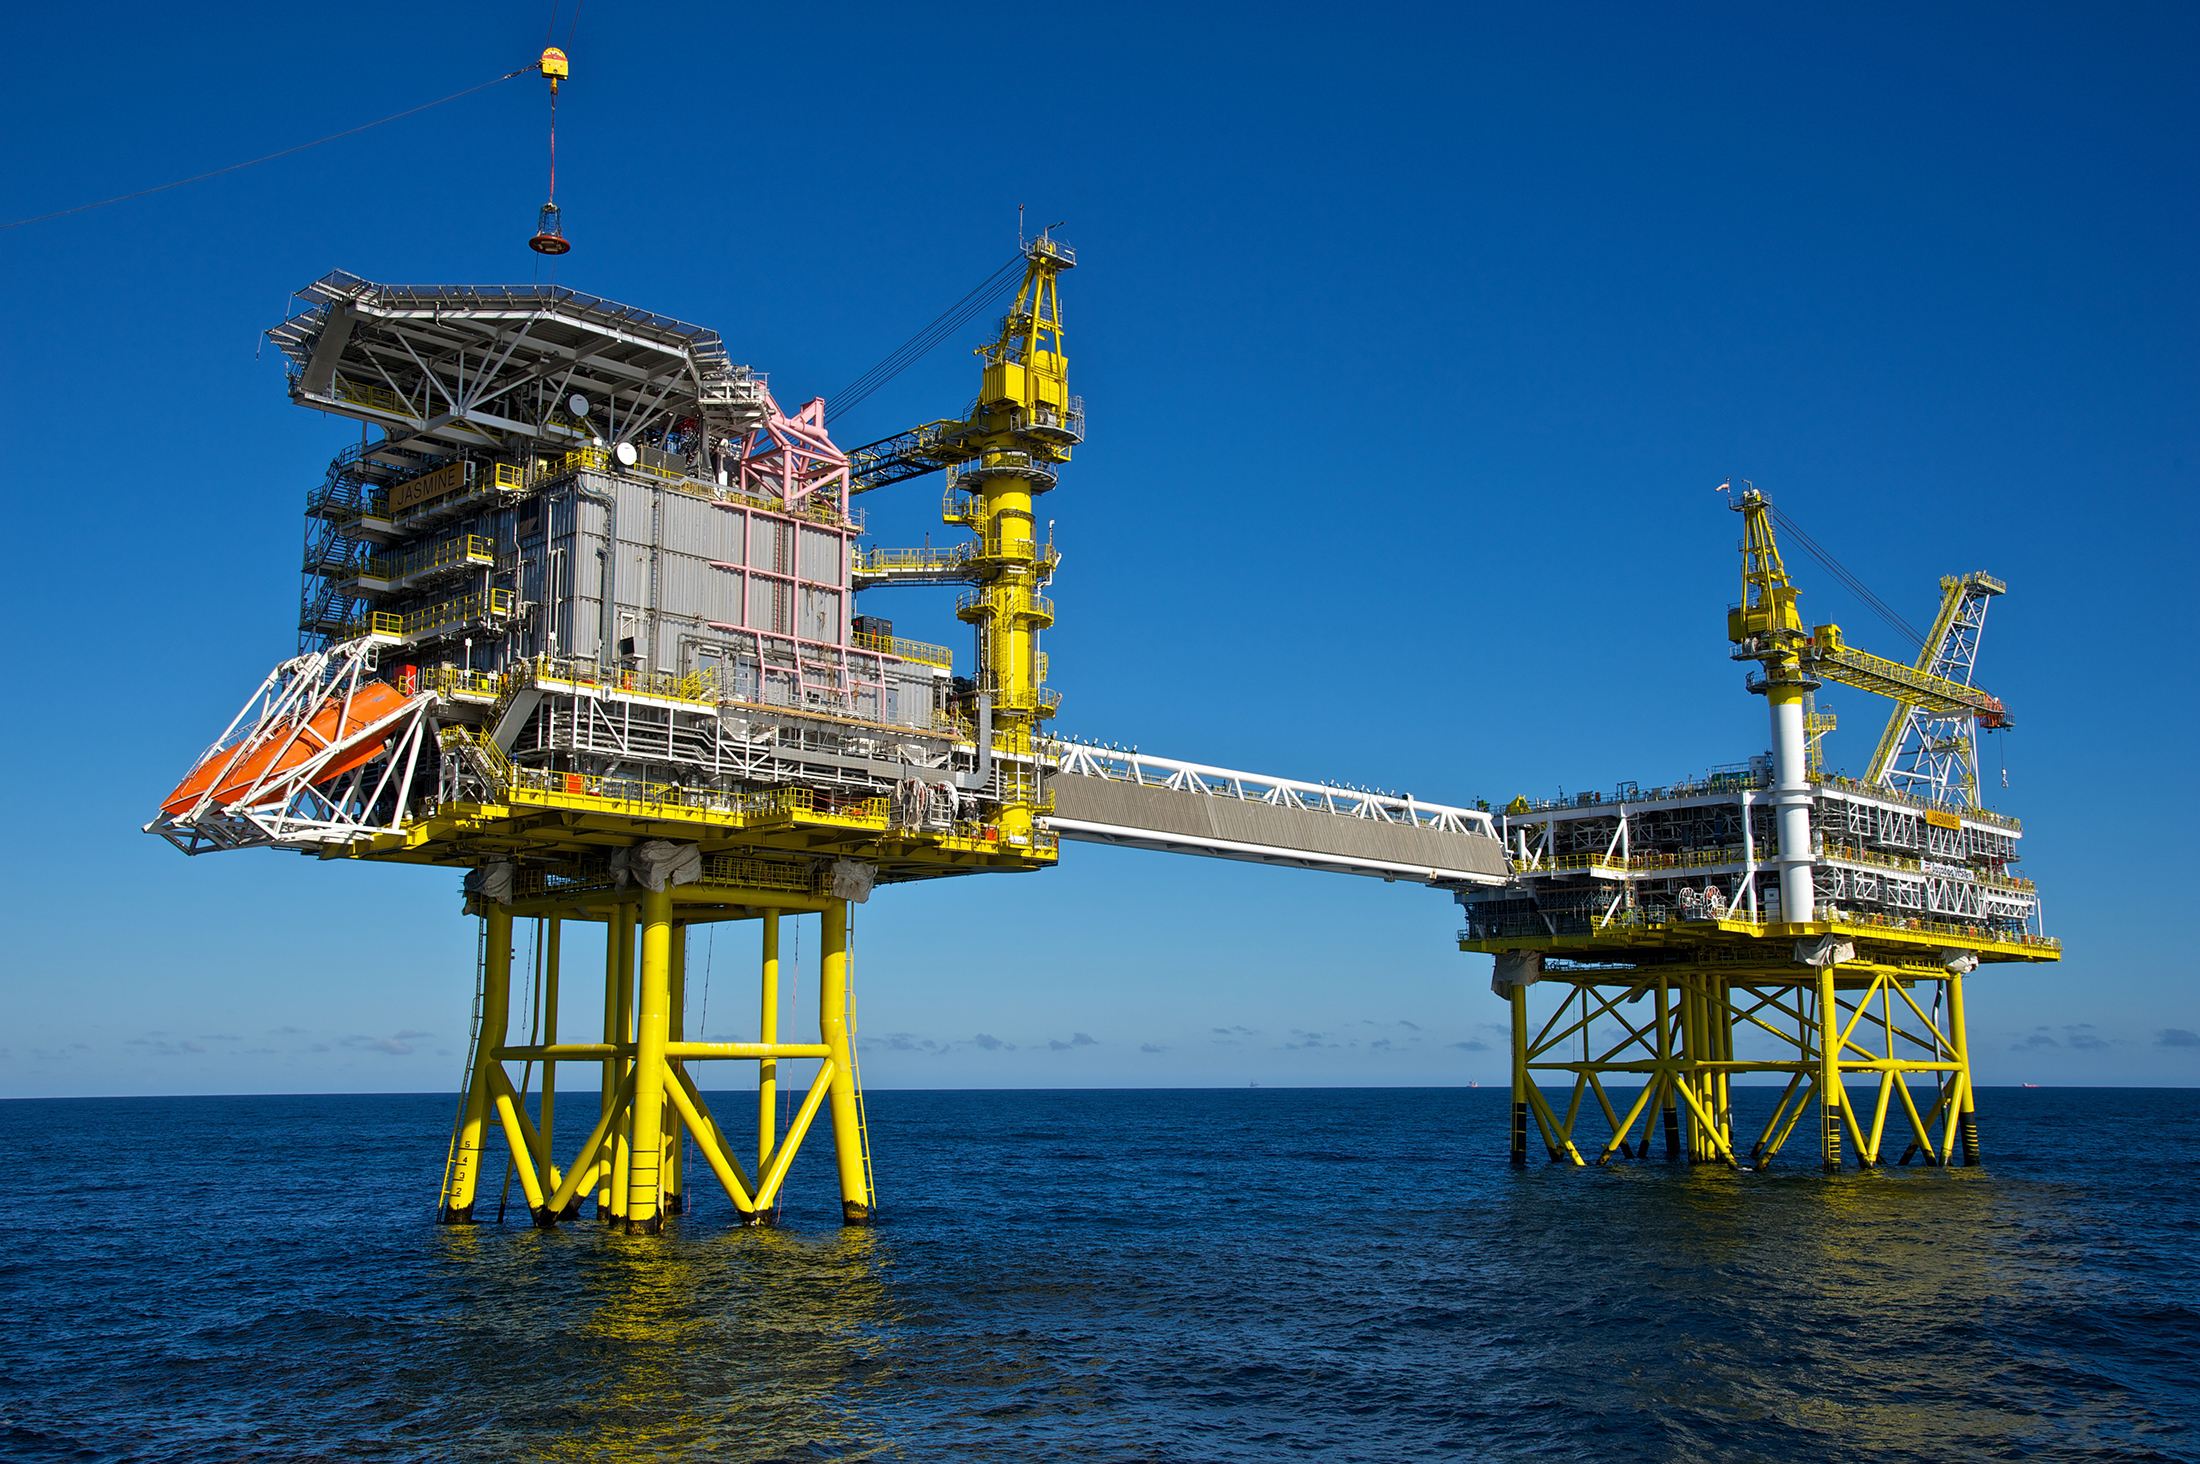 The deal will see Chrysaor take operatorship of a number of North Sea assets, including the Jasmine field